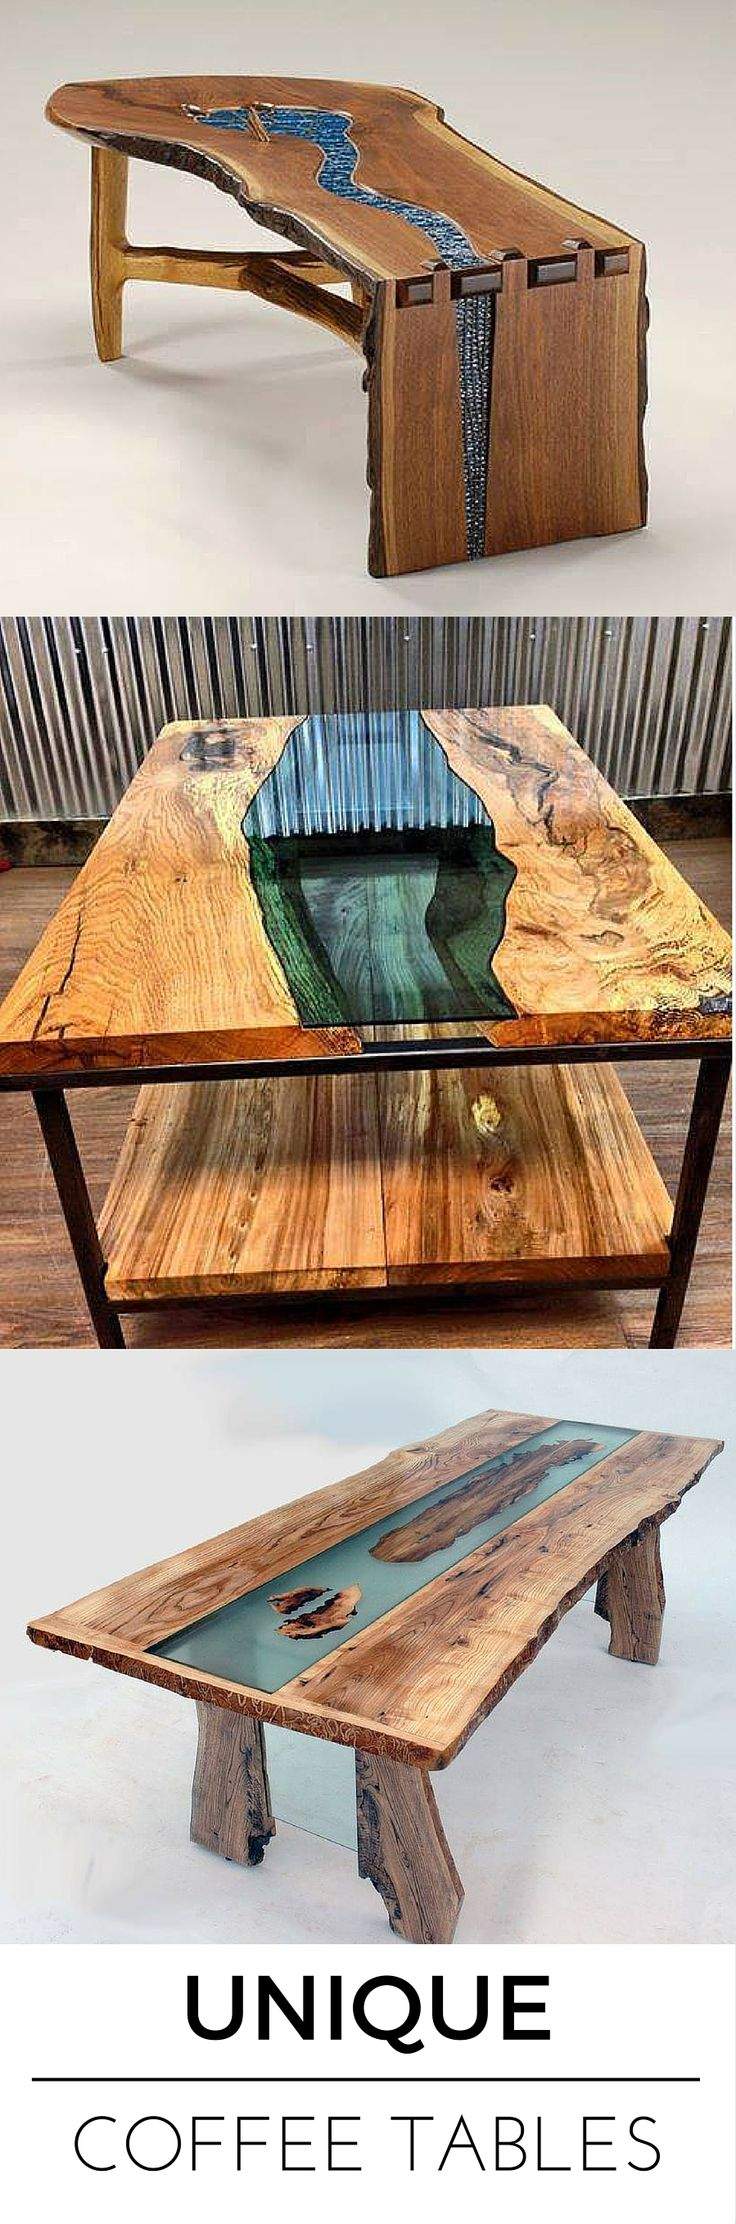 25 Best Unique Coffee Table Ideas On Pinterest: unique coffee table ideas